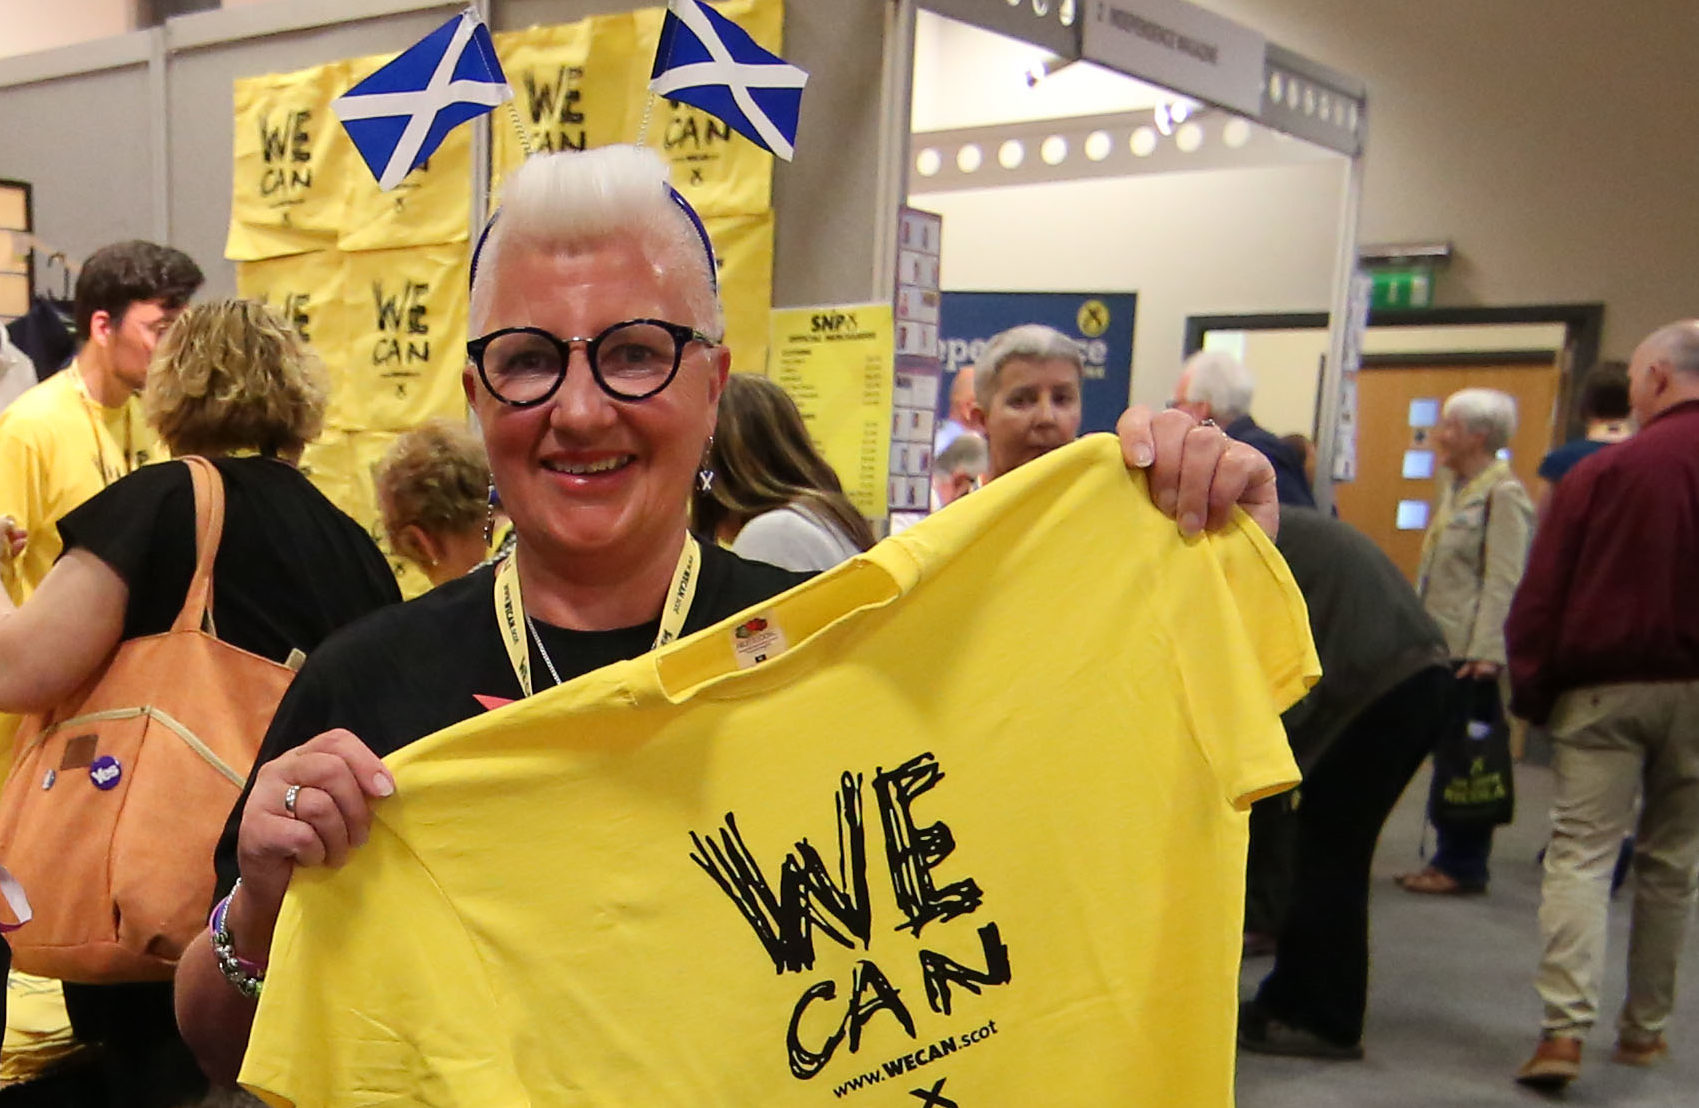 Agnes Magowan shows her support at the SNP conference in Aberdeen on Friday (Allan Milligan)